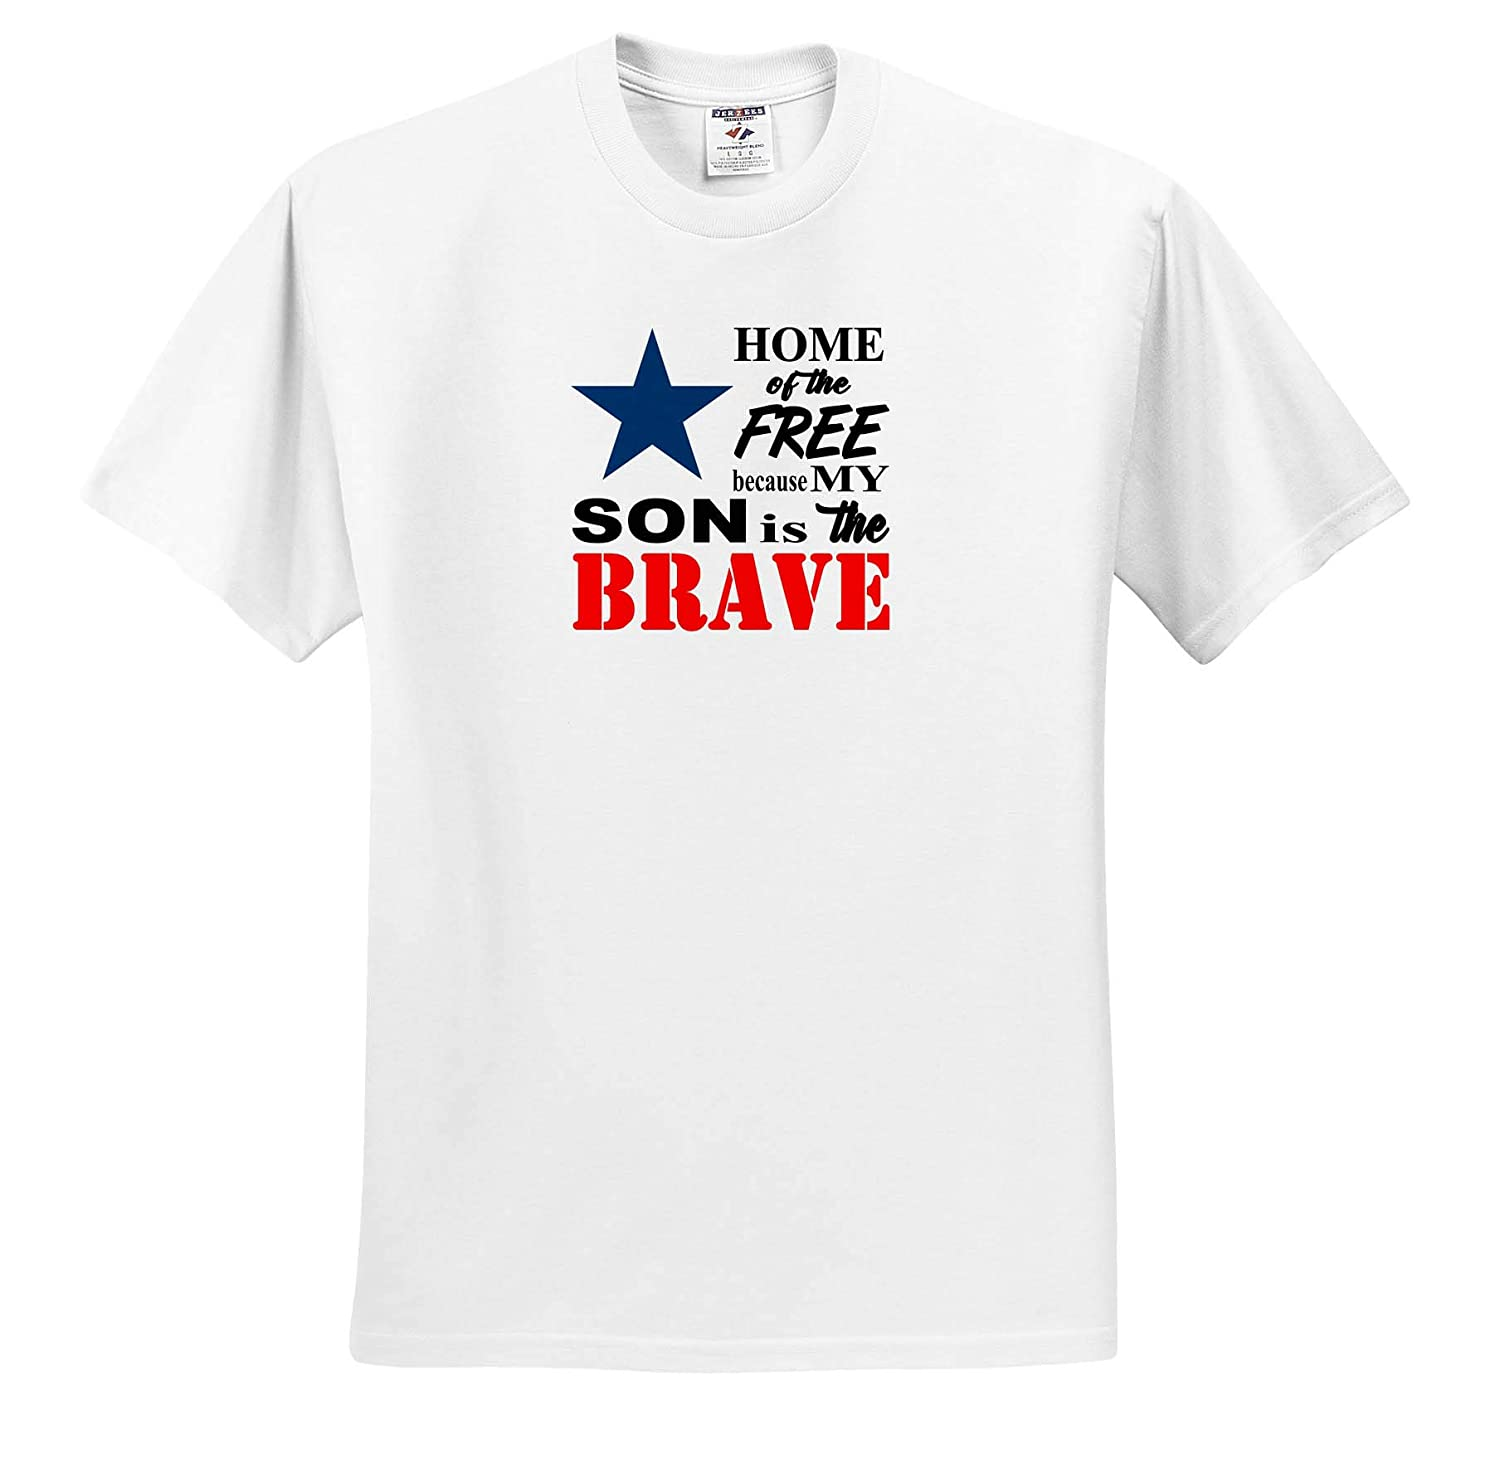 Quotes Adult T-Shirt XL ts/_319910 Home of The Free Because My Son is The Brave Quote 3dRose Amanda Levermann